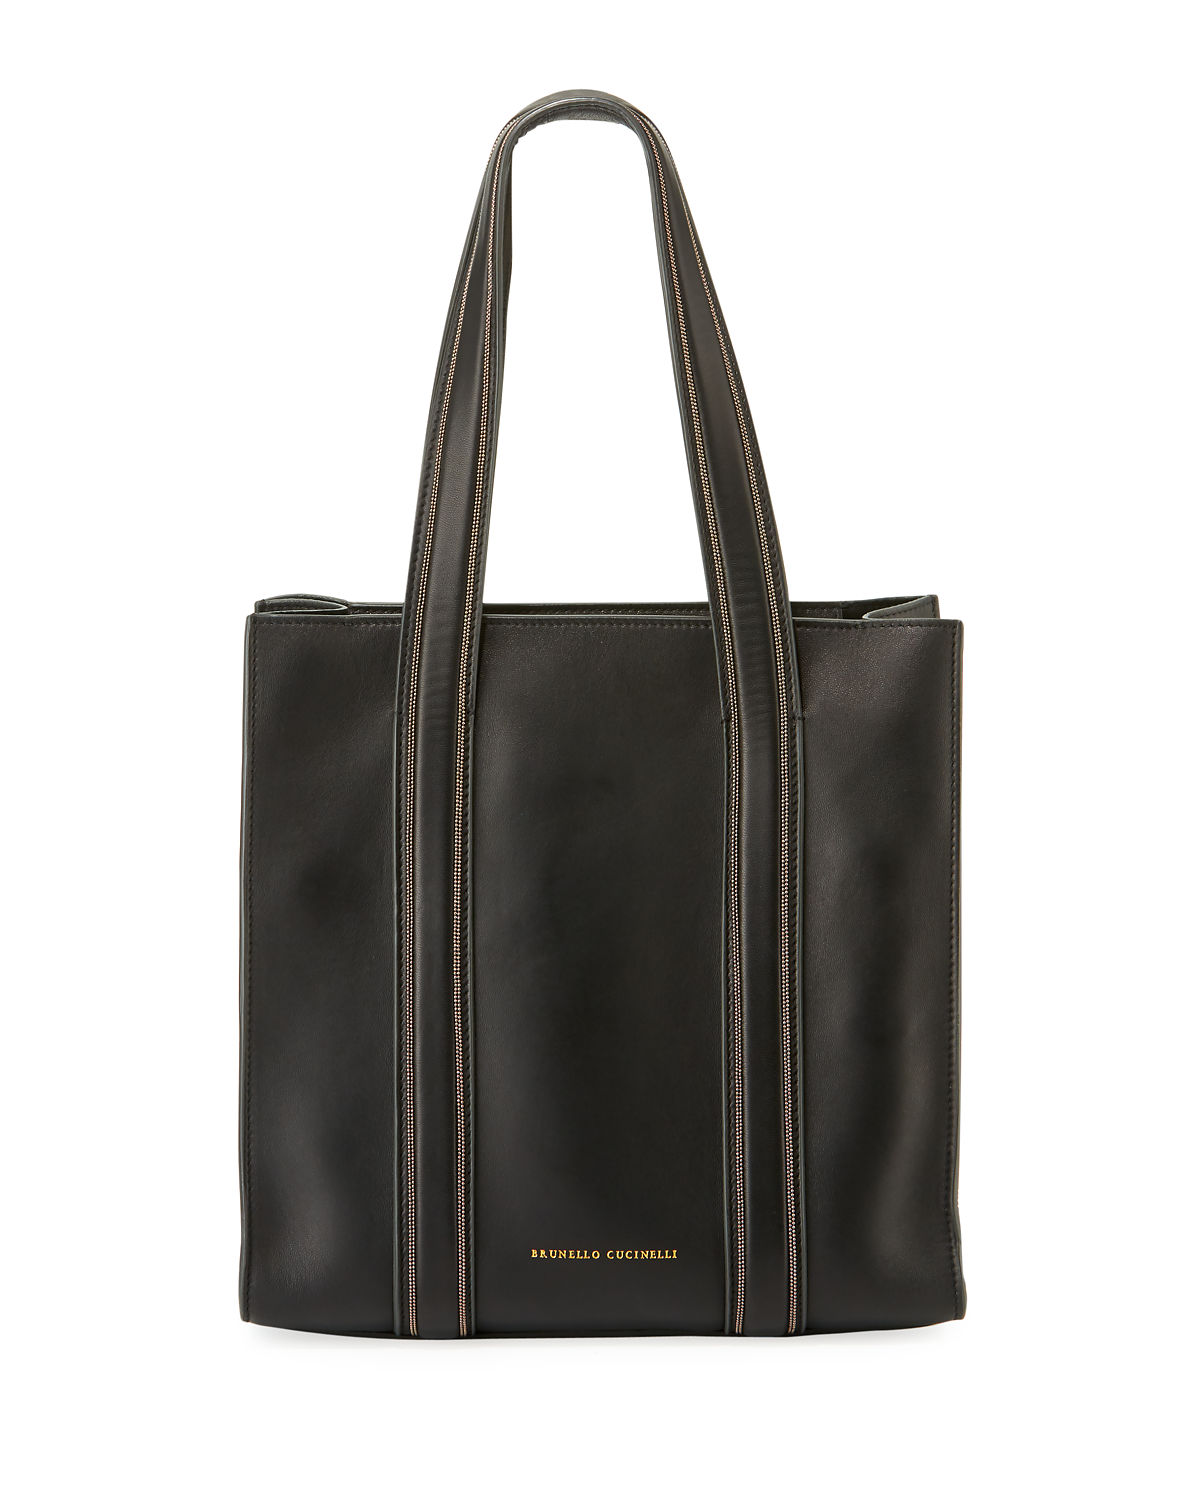 03ebd064eaae Brunello Cucinelli Smooth Leather Tote Bag with Monili Trim